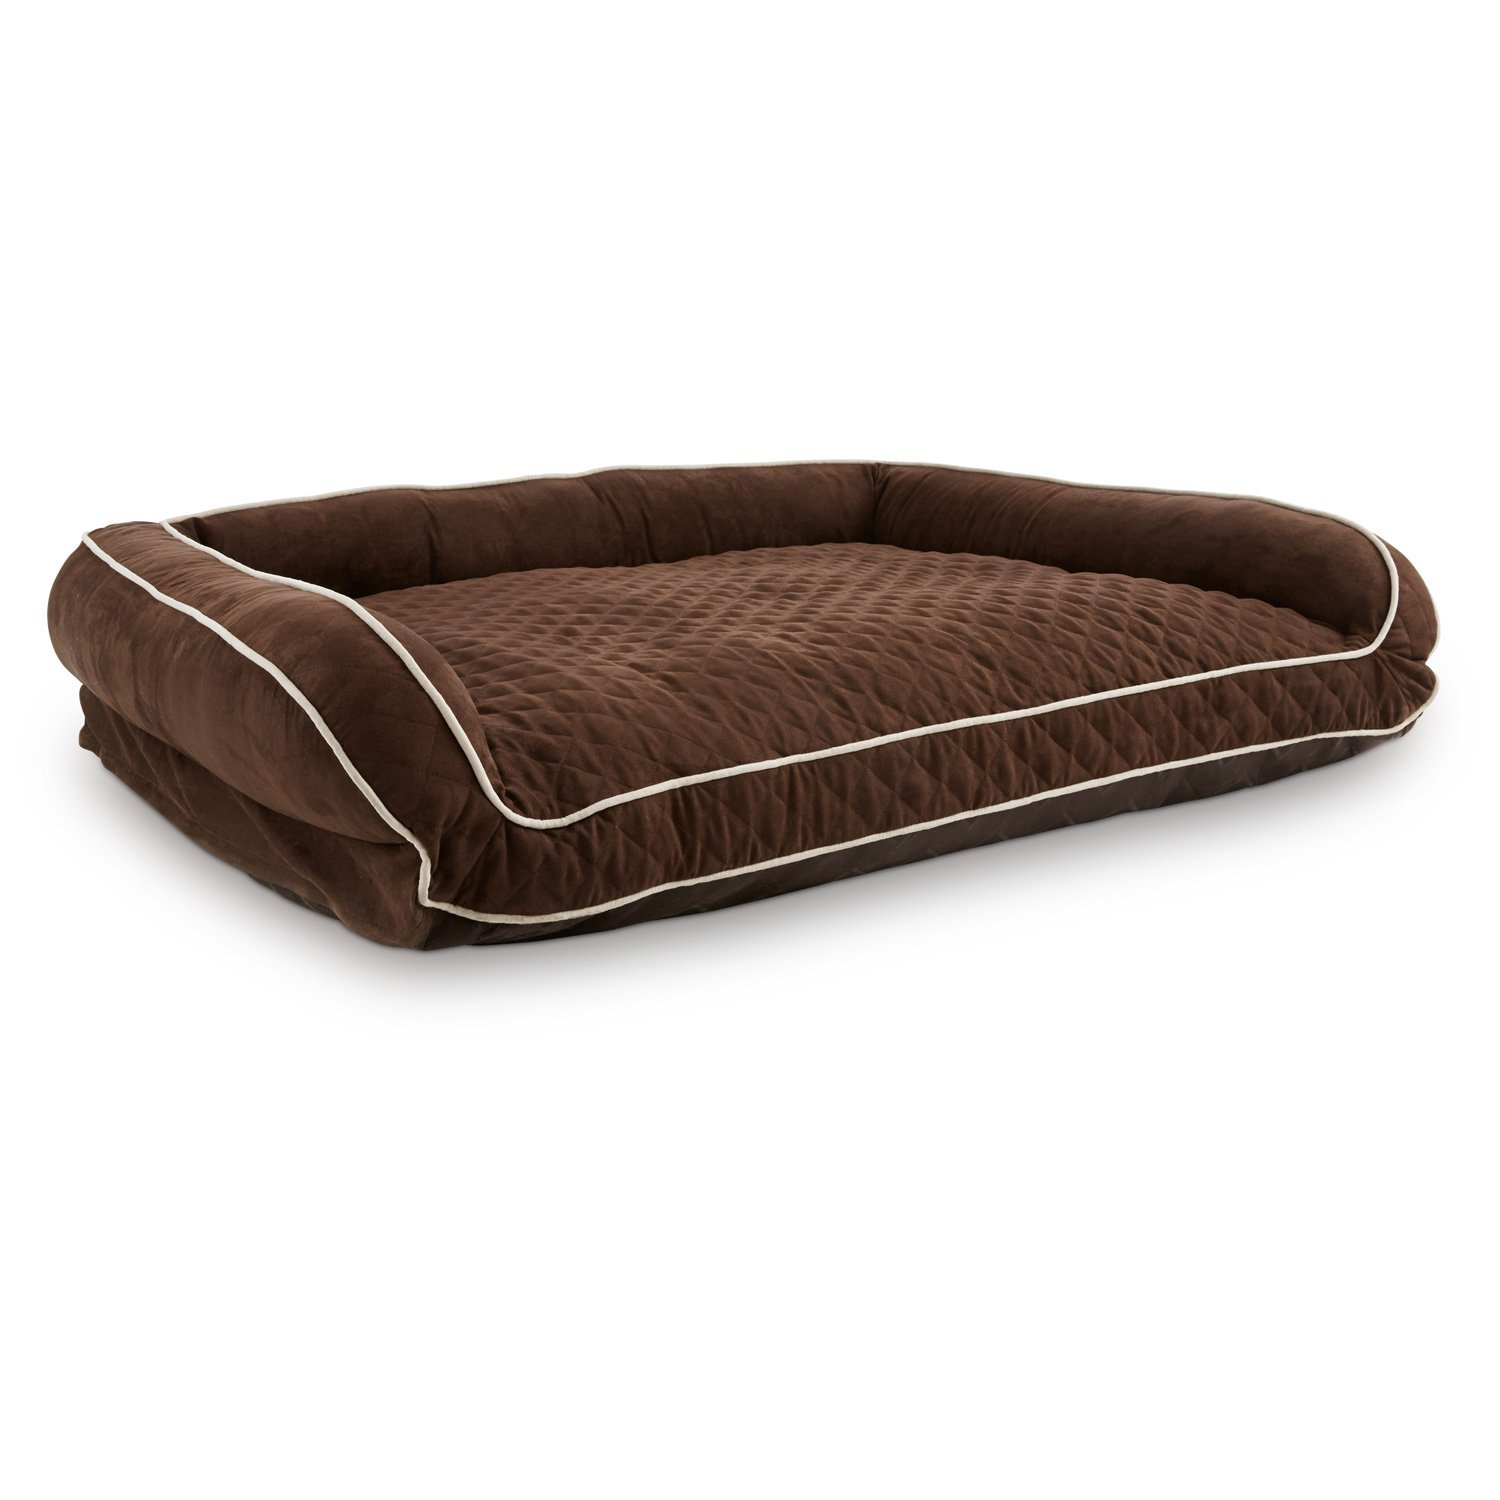 Petco Memory Foam Brown Couch Dog Bed Bpz4c0109276